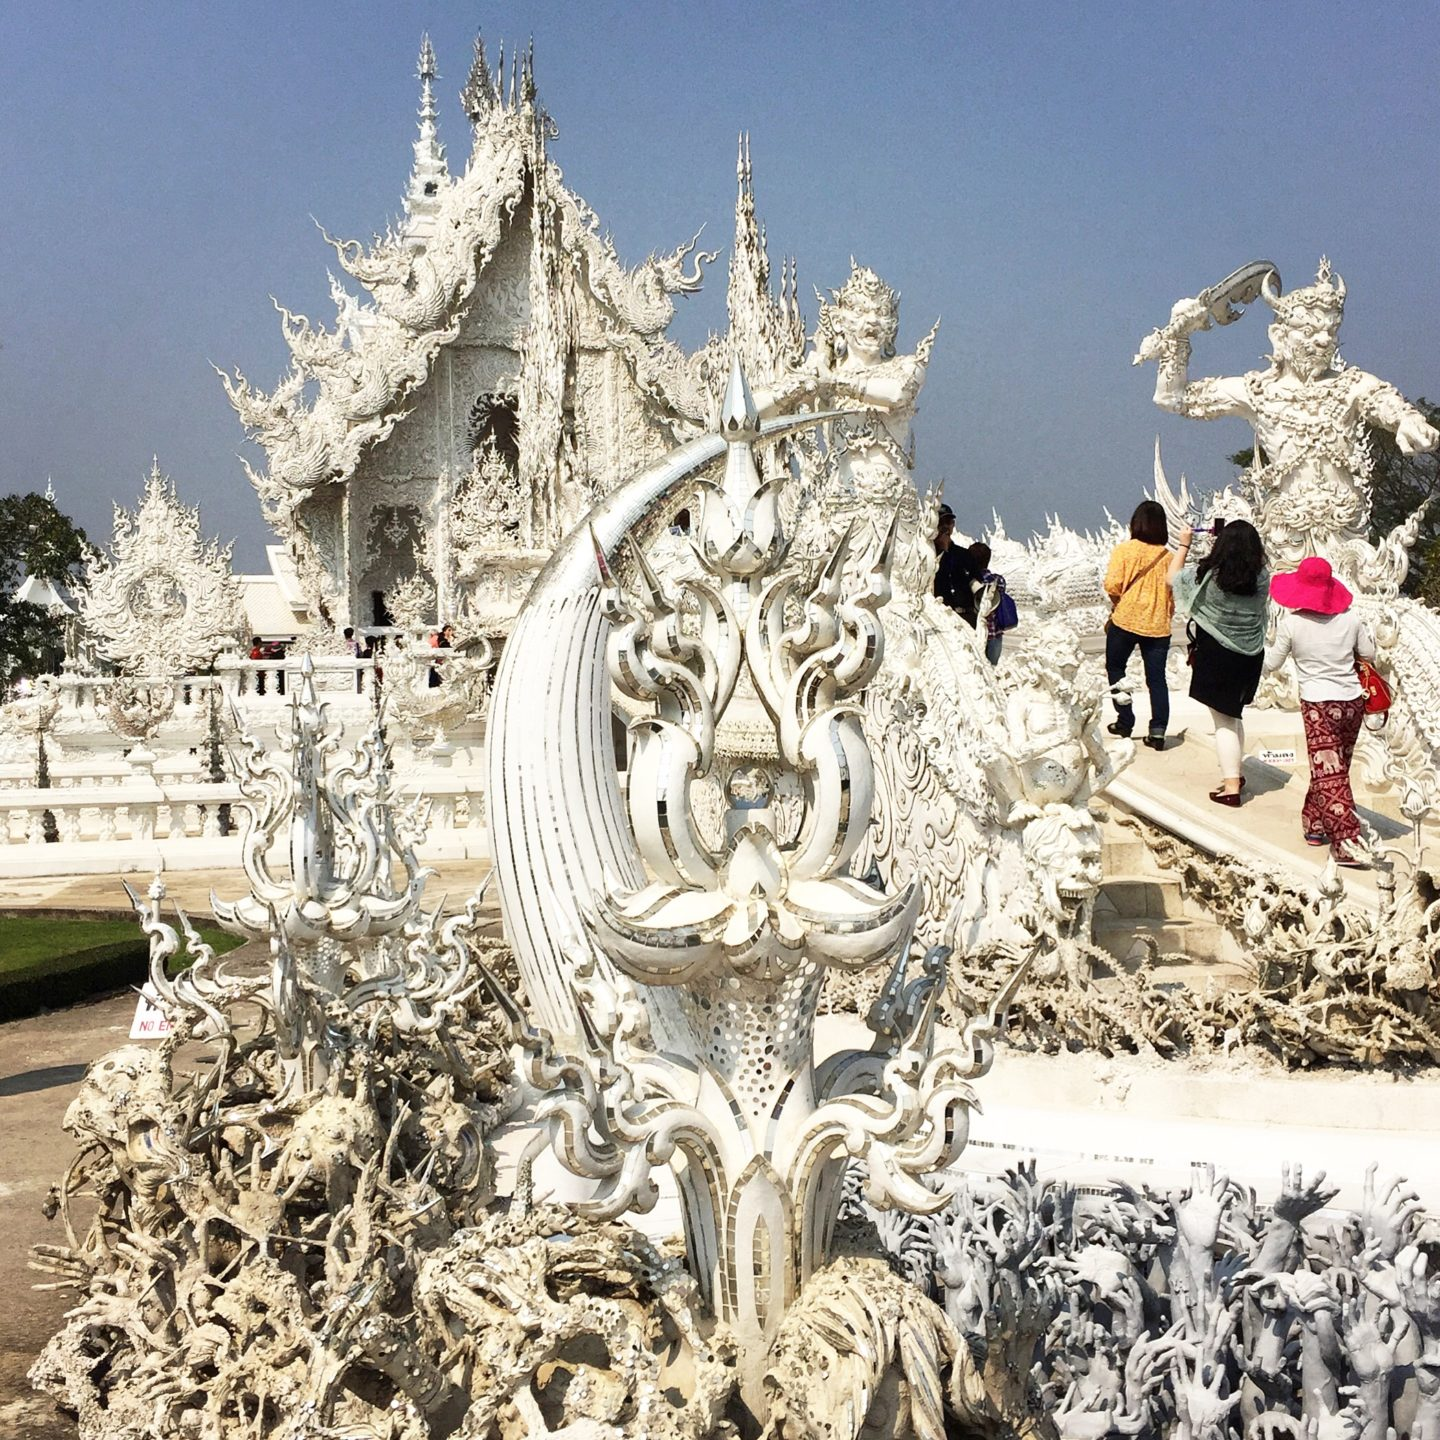 Chiang Rai: the White Temple & the Golden Triangle